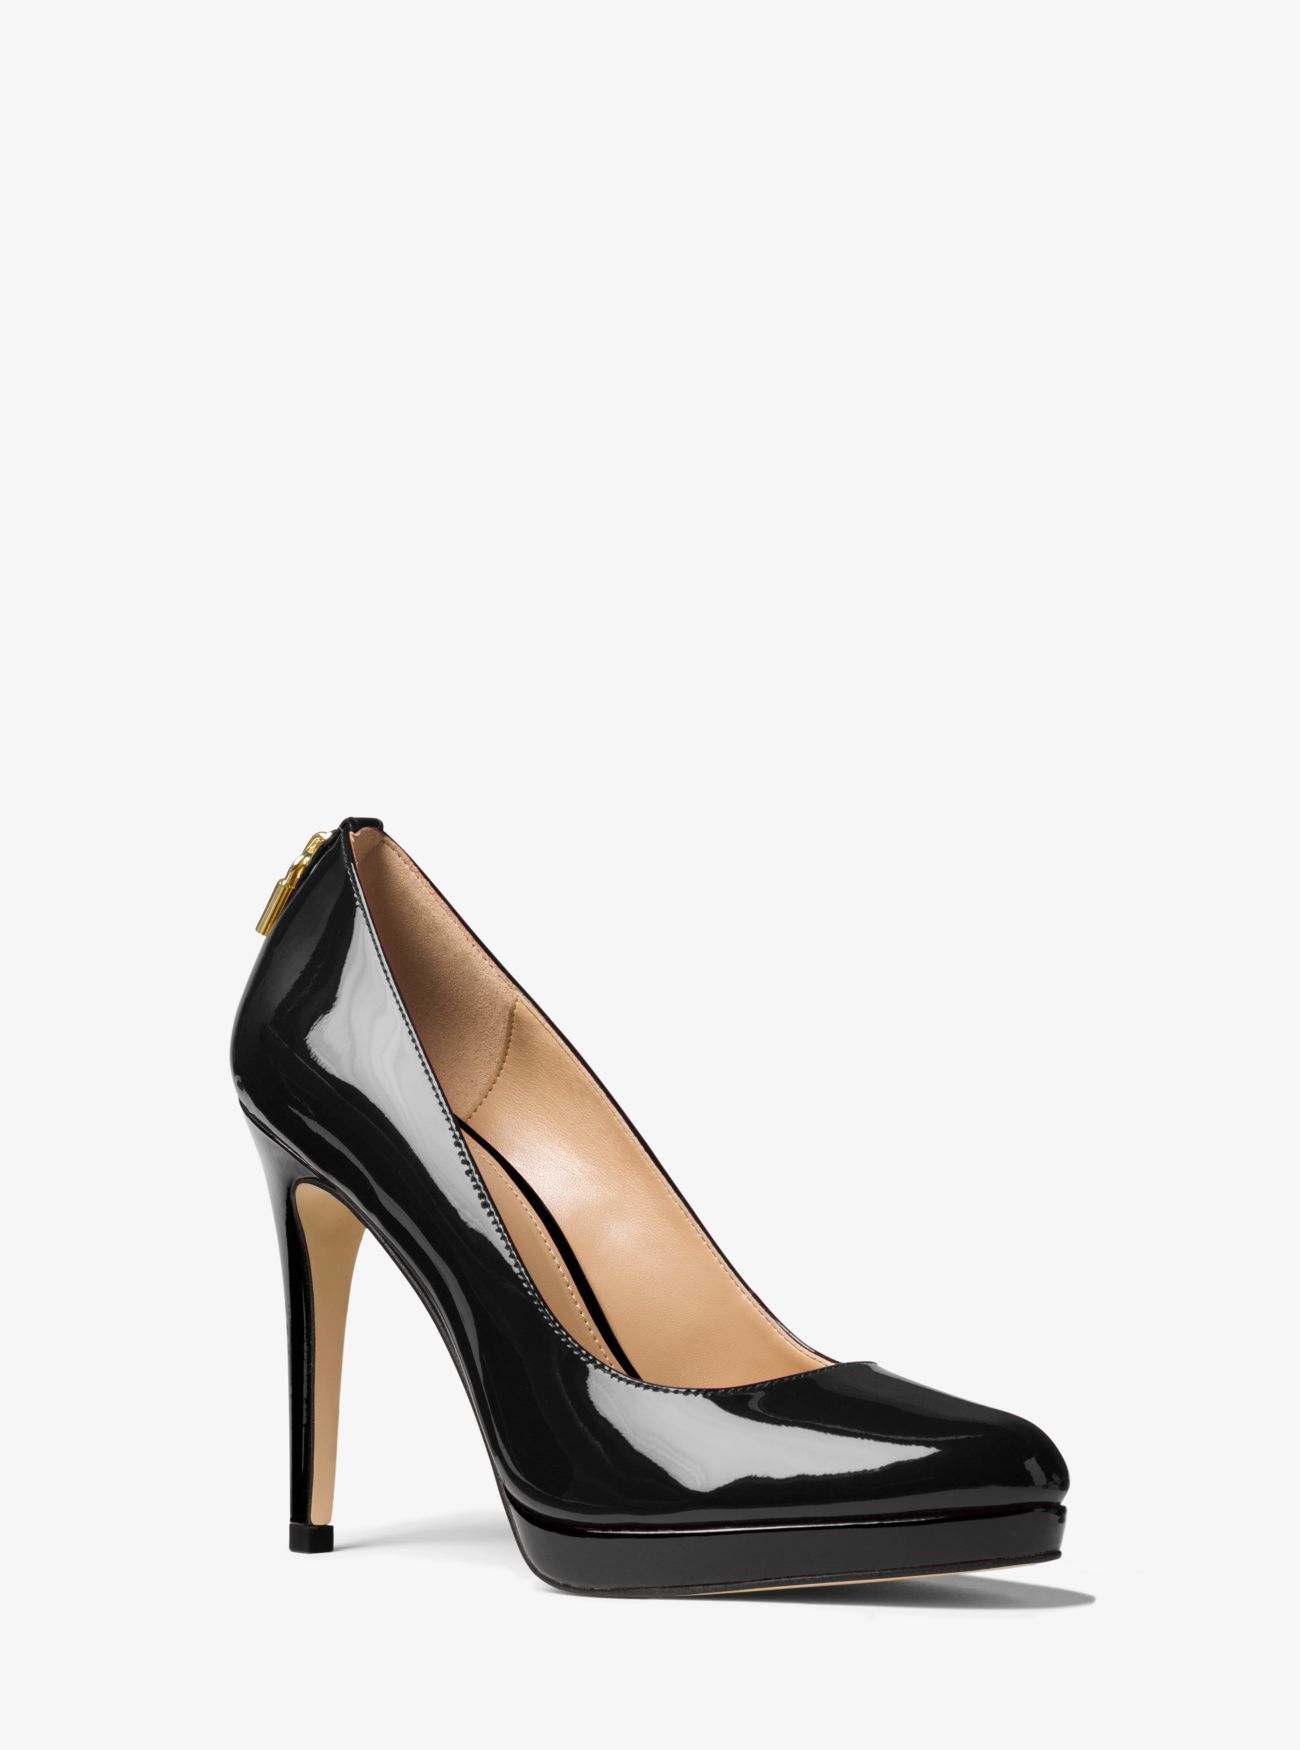 fb2ecfe44606 Antoinette Patent Leather Pump